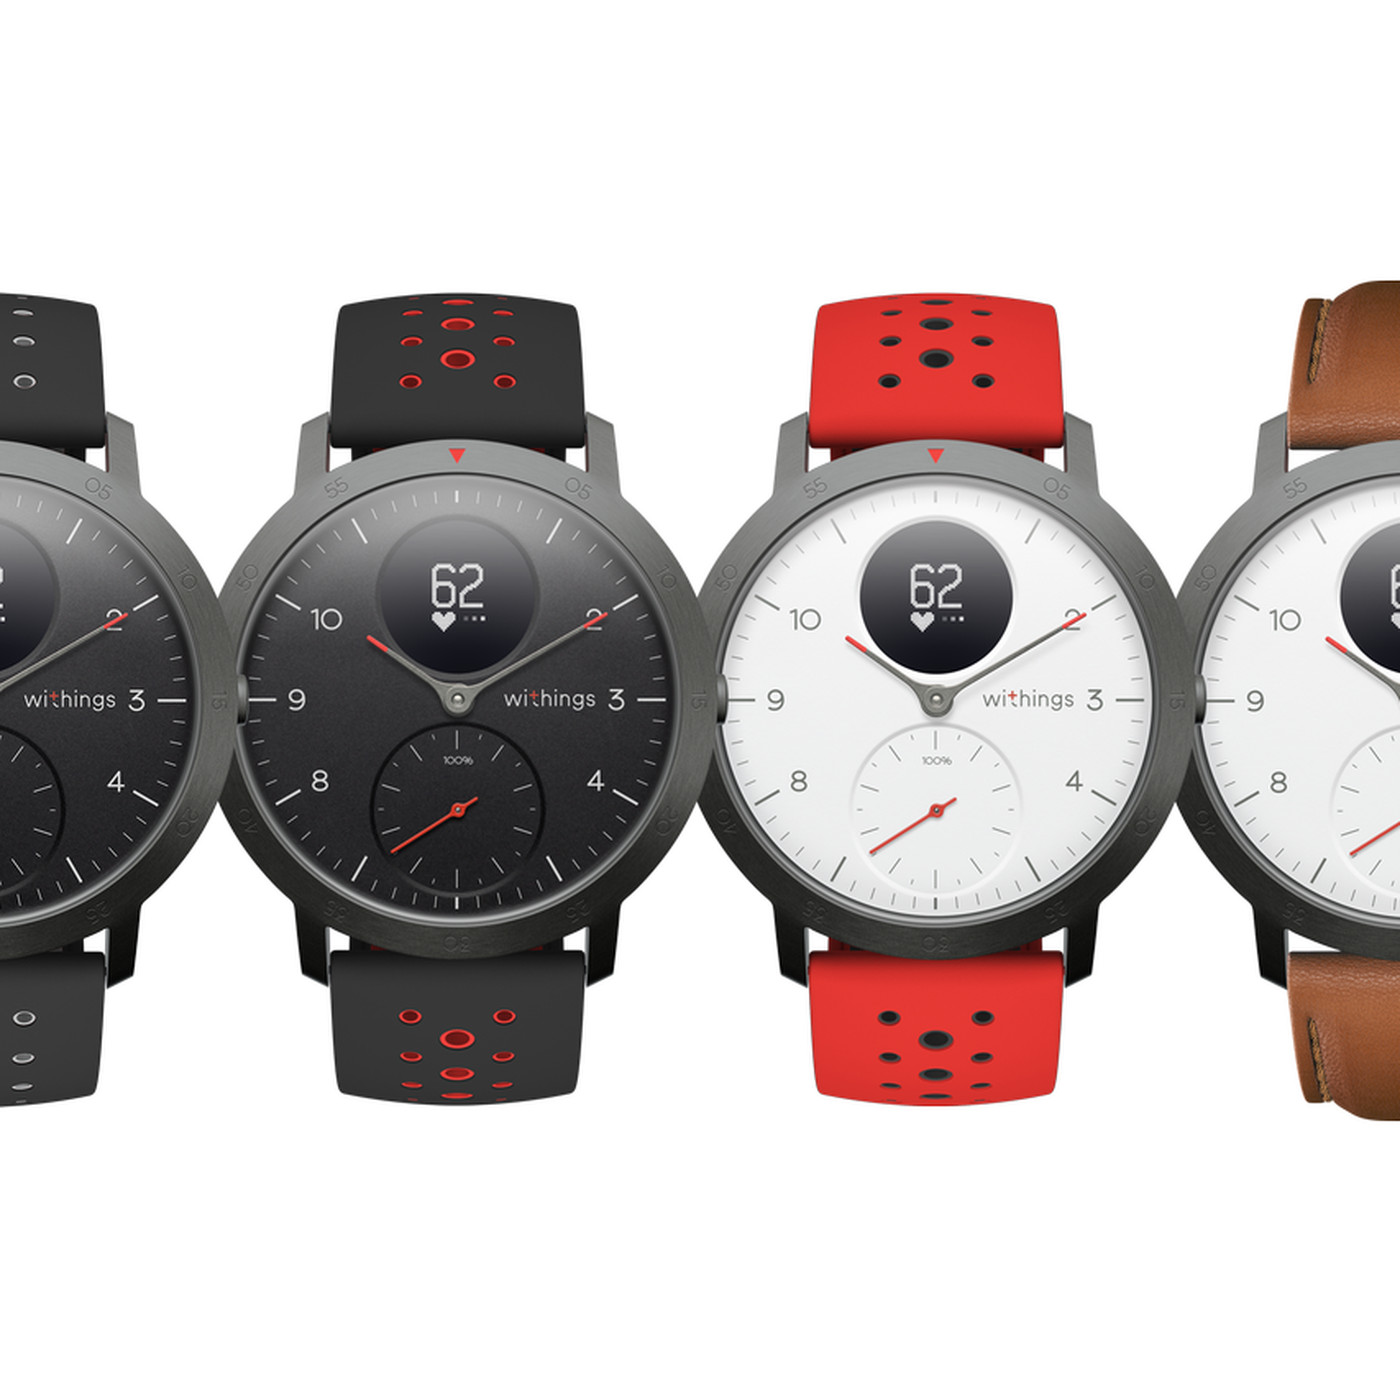 theverge.com - Dami Lee - Withings releases first smartwatch after buying itself back from Nokia